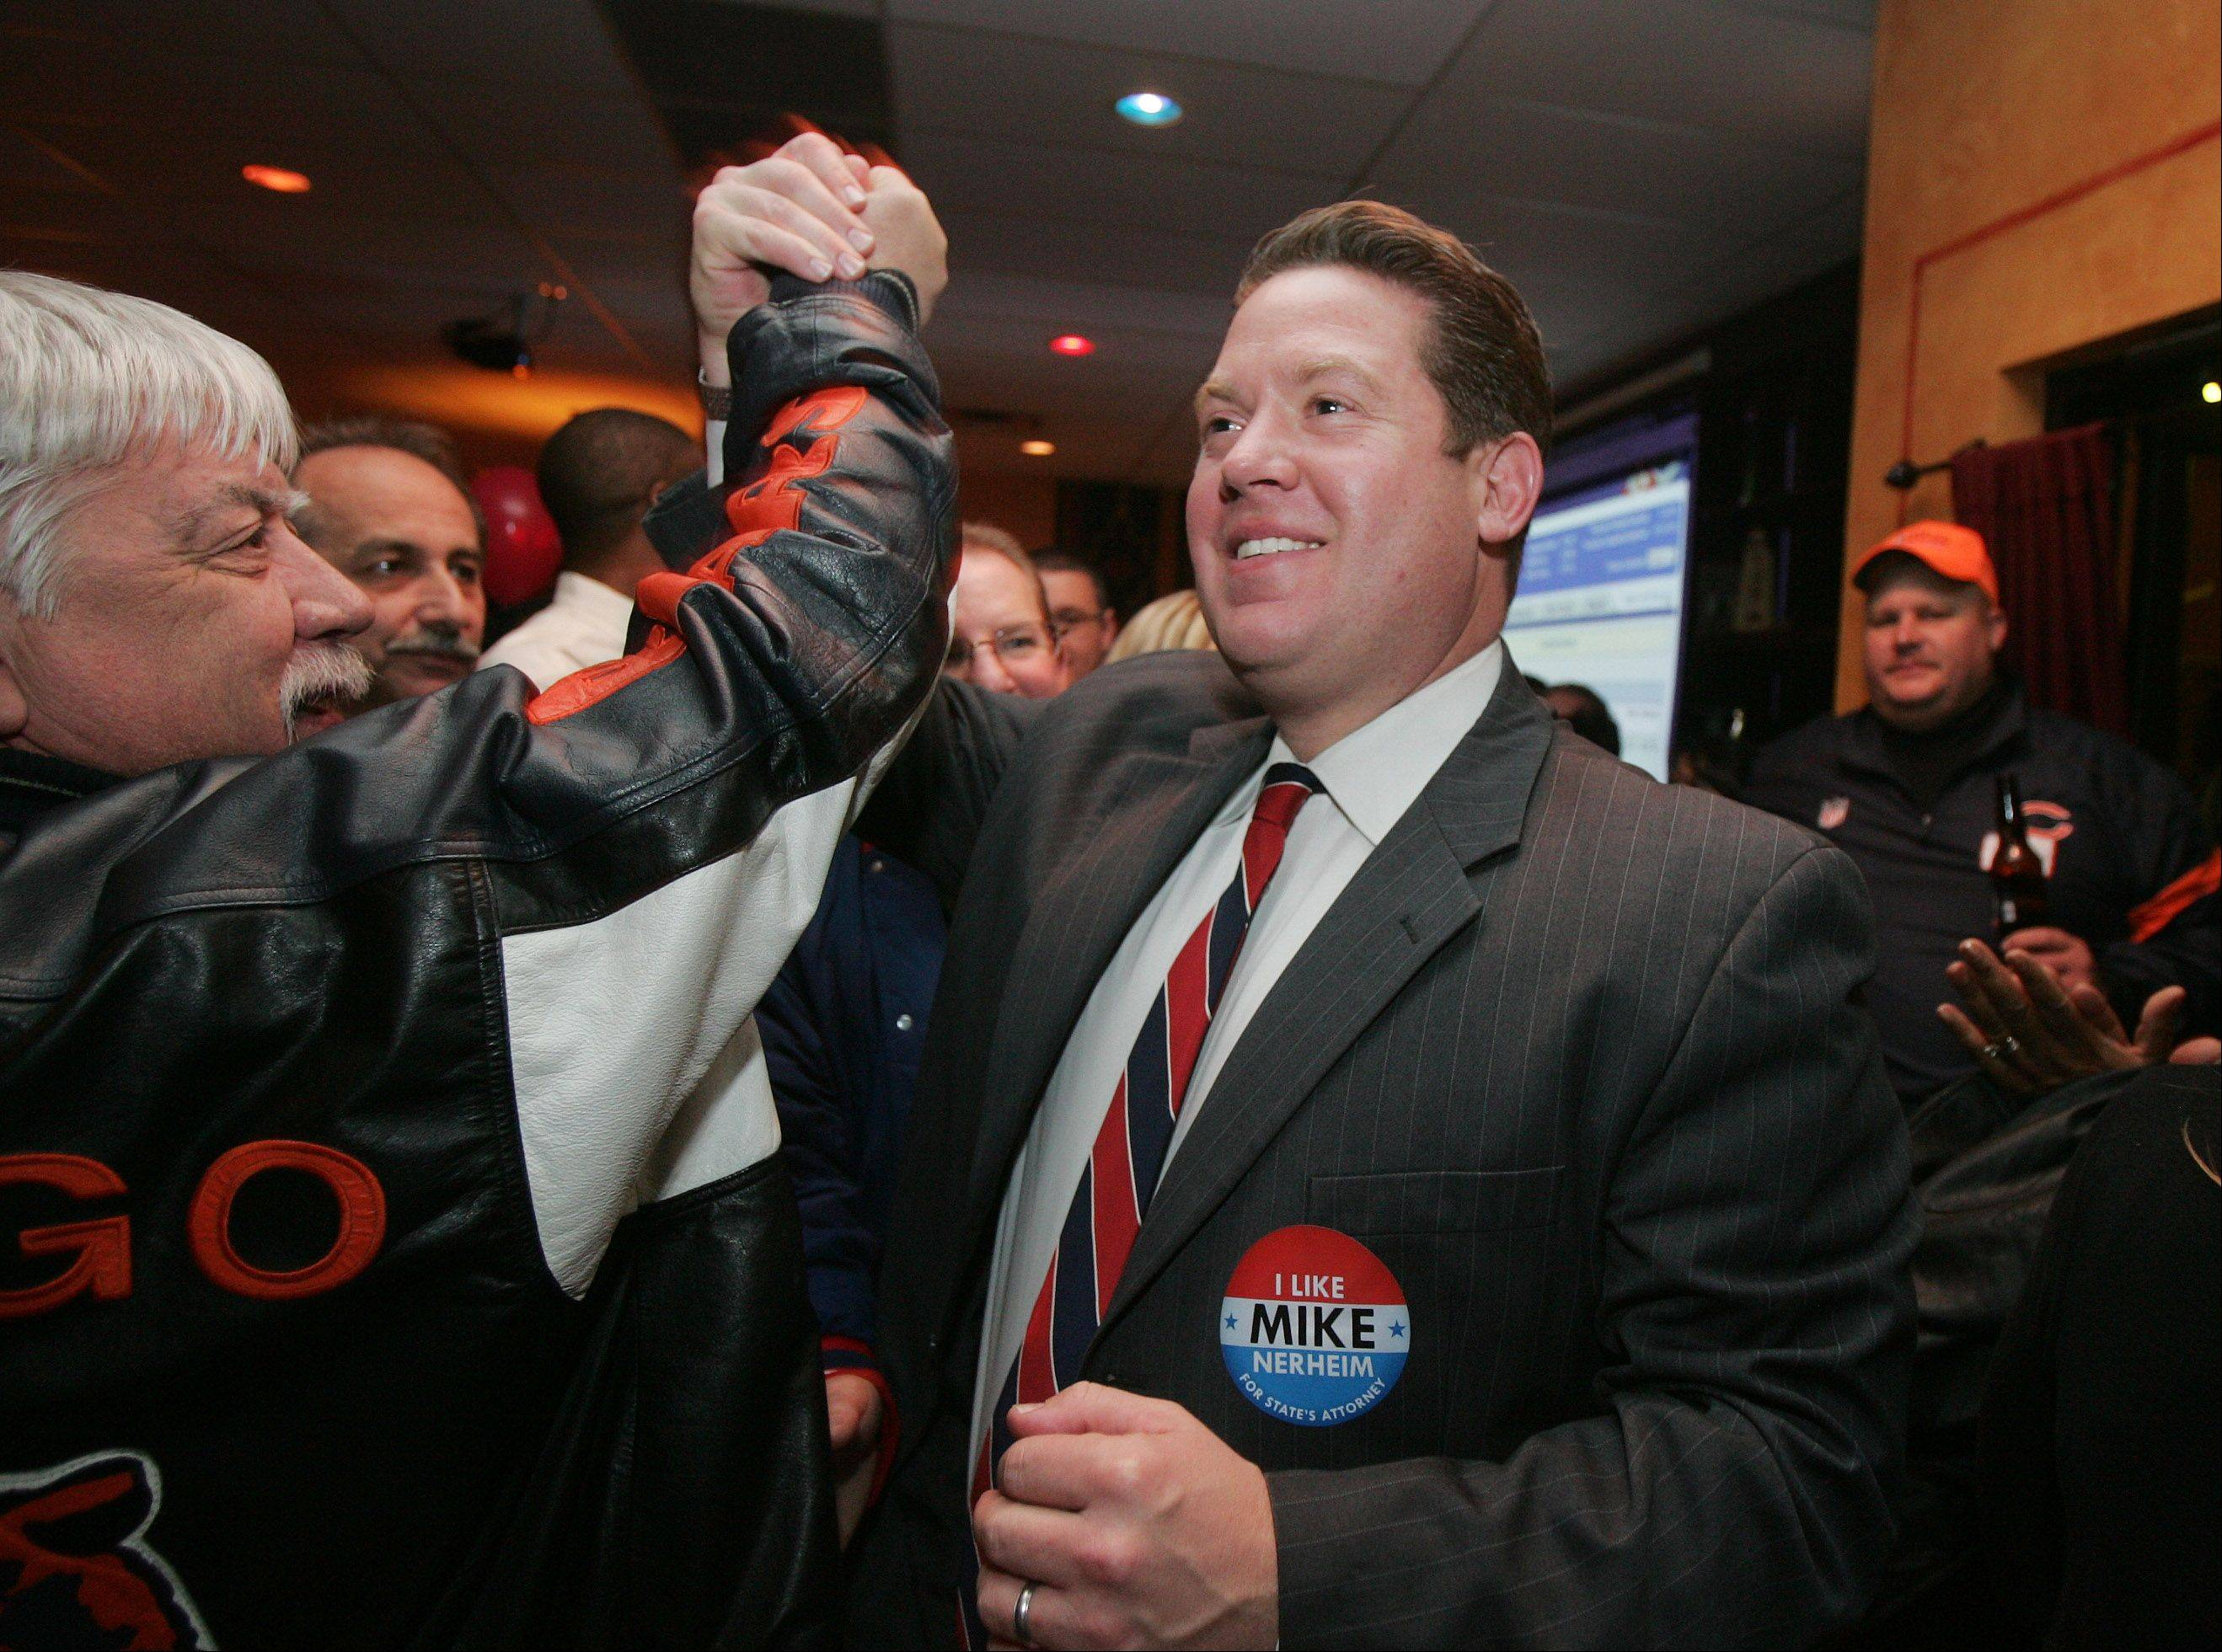 Republican candidate Mike Nerheim's hand is lifted in victory by supporter Tom Briscoe before he gives his victory speech at Tacos El Norte in Gurnee Tuesday after he won the Lake County State's Attorney's race.